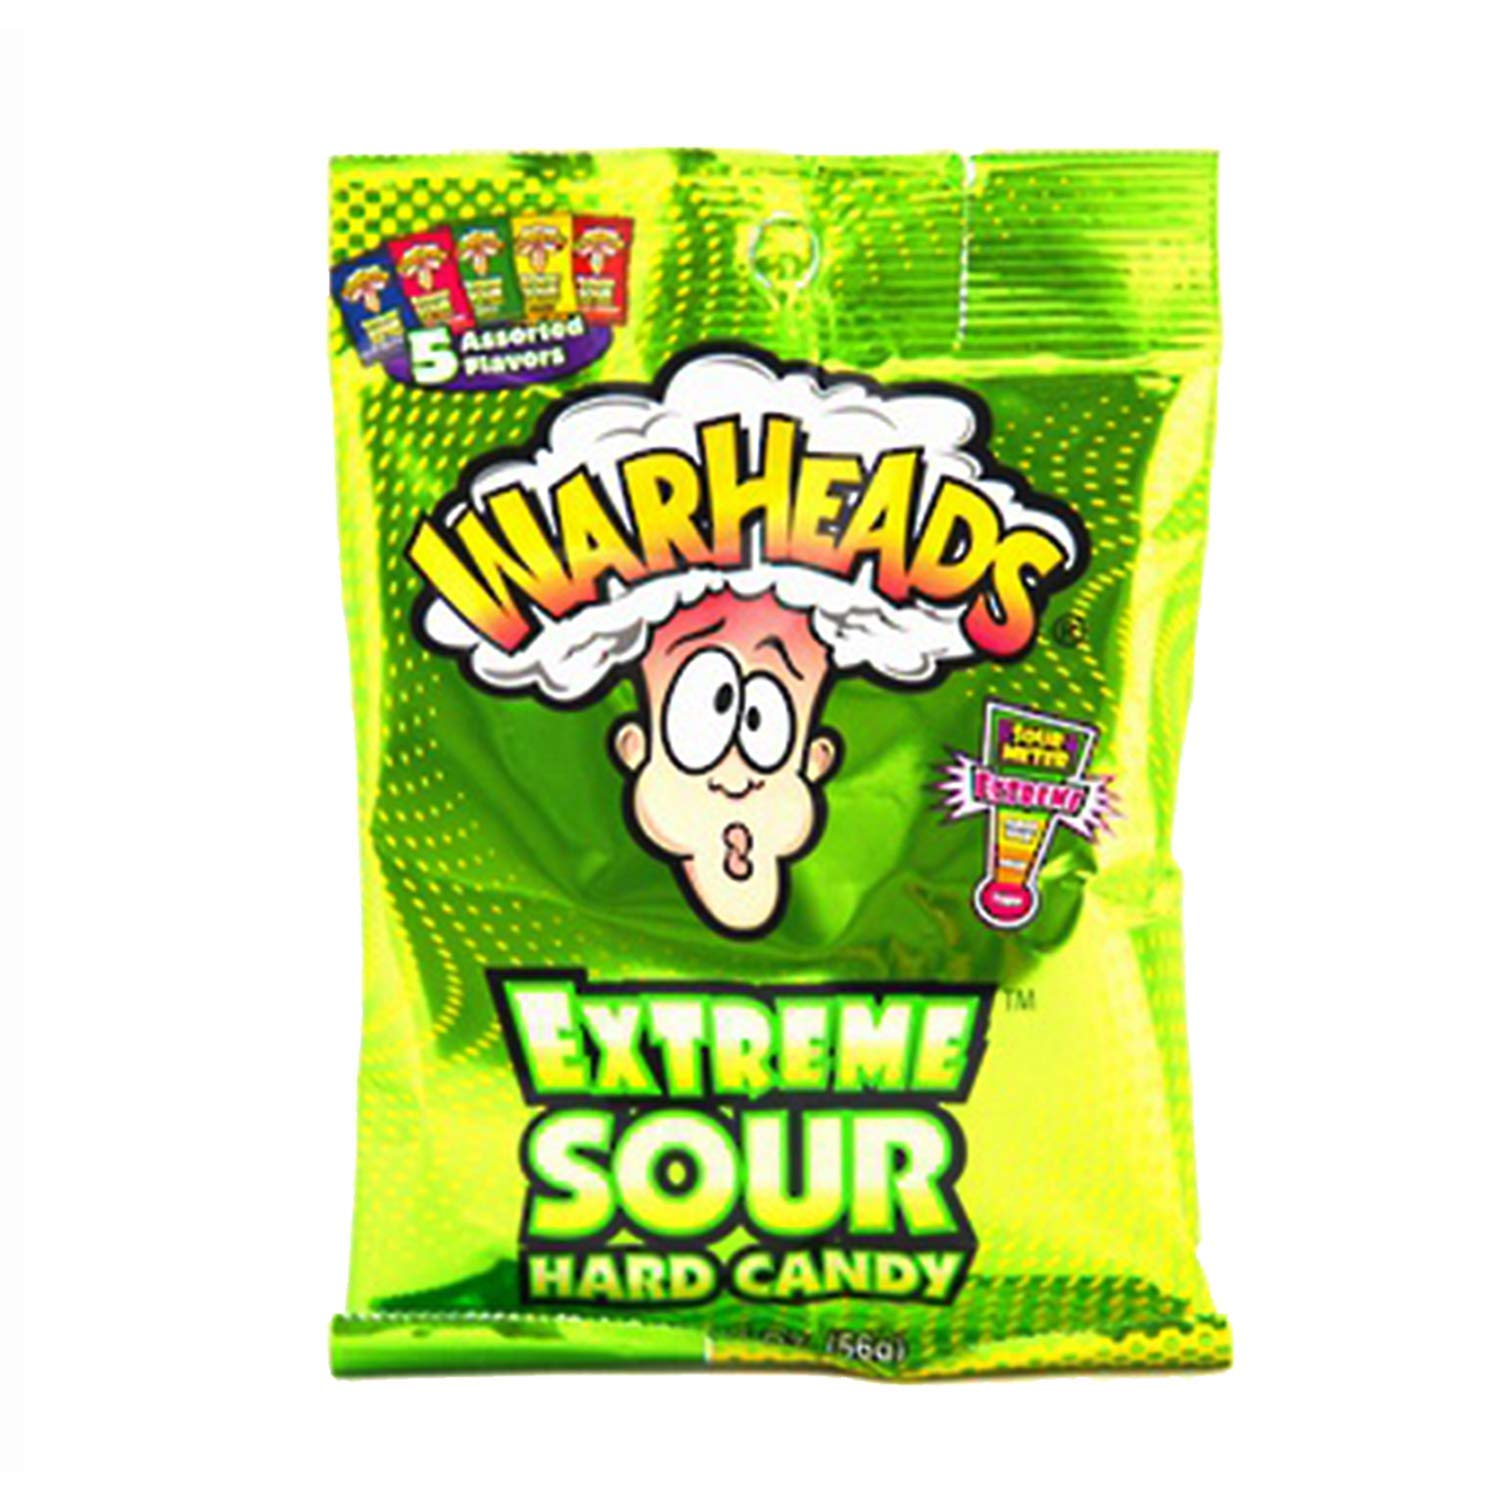 Package of Warheads